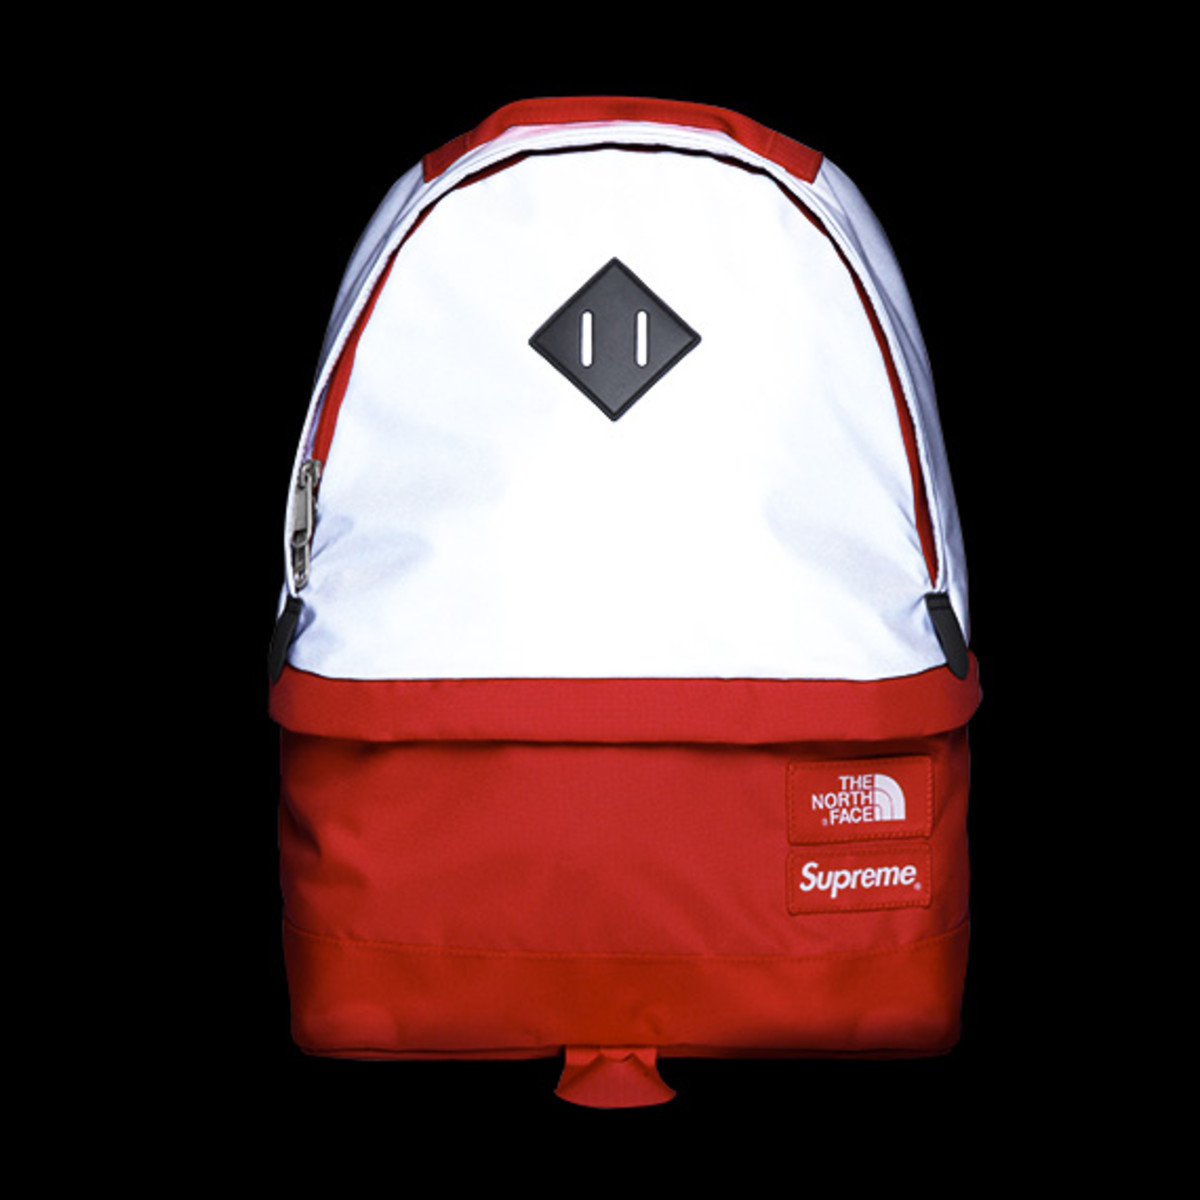 the-north-face-supreme-3m-refelctive-collection-medium-day-pack-03